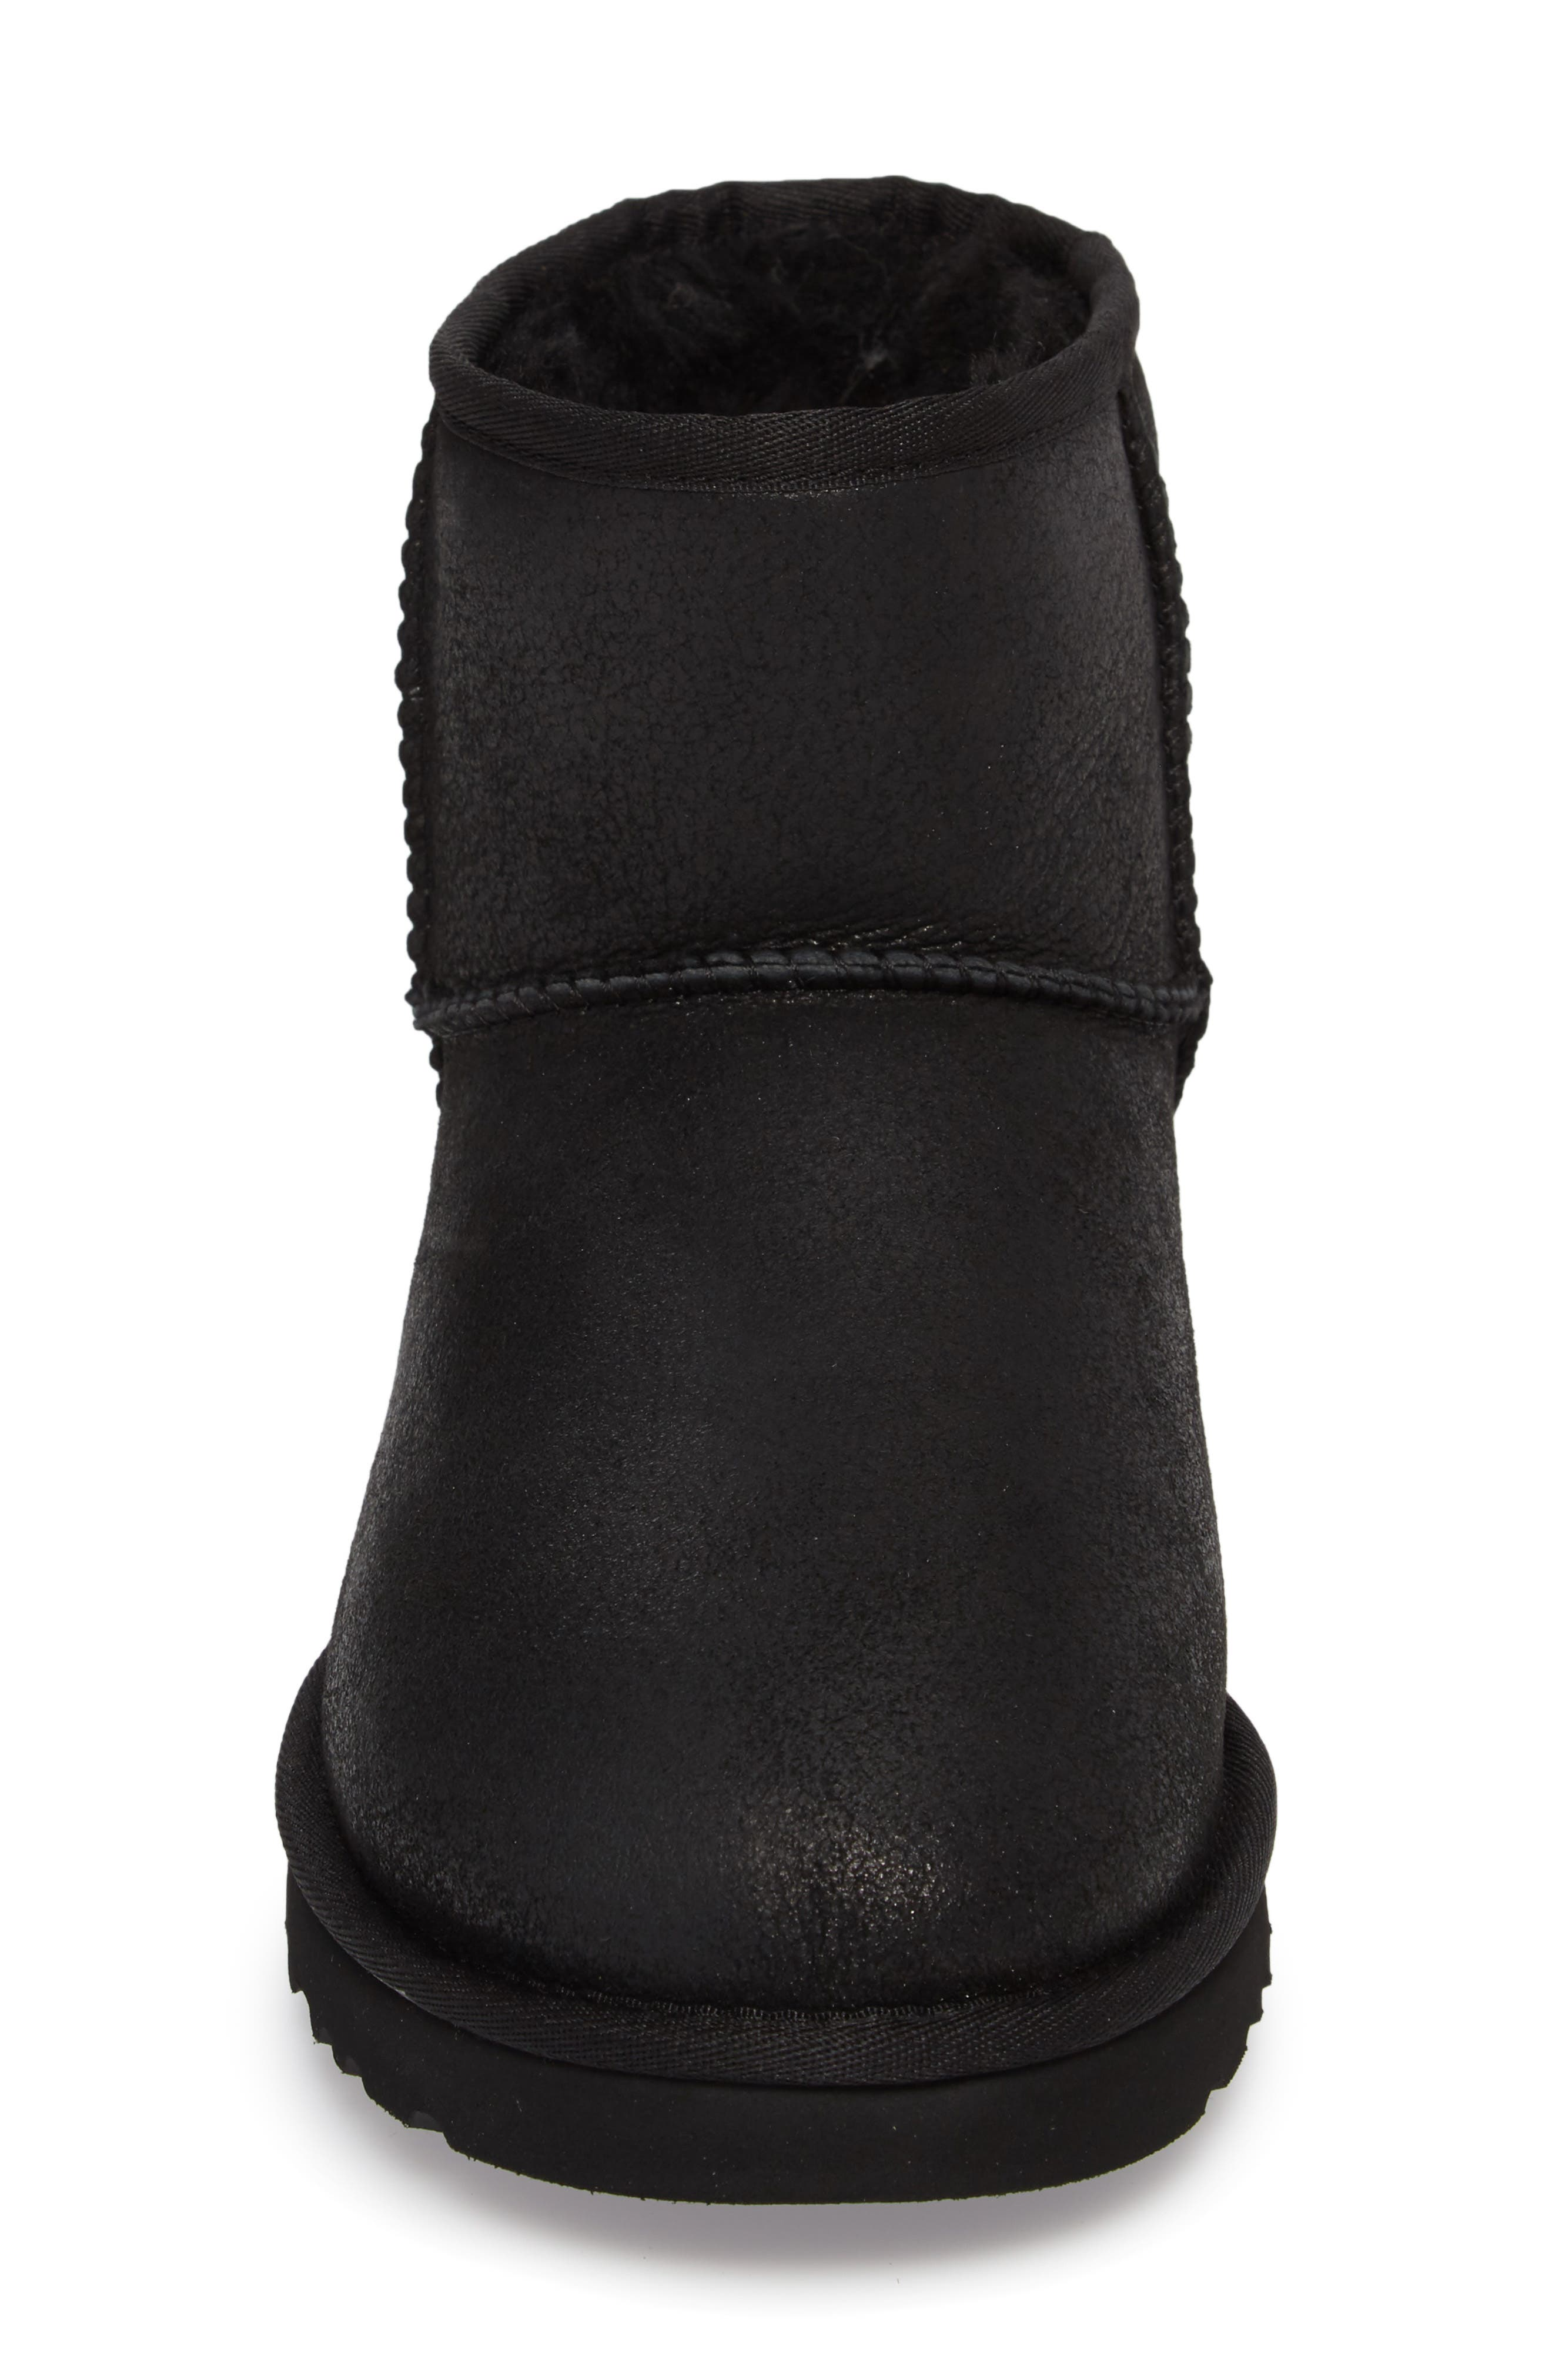 UGG<SUP>®</SUP>, Classic Mini Bomber Boot with Genuine Shearling or UGGpure<sup>™</sup> Lining, Alternate thumbnail 4, color, BOMBER JACKET BLACK